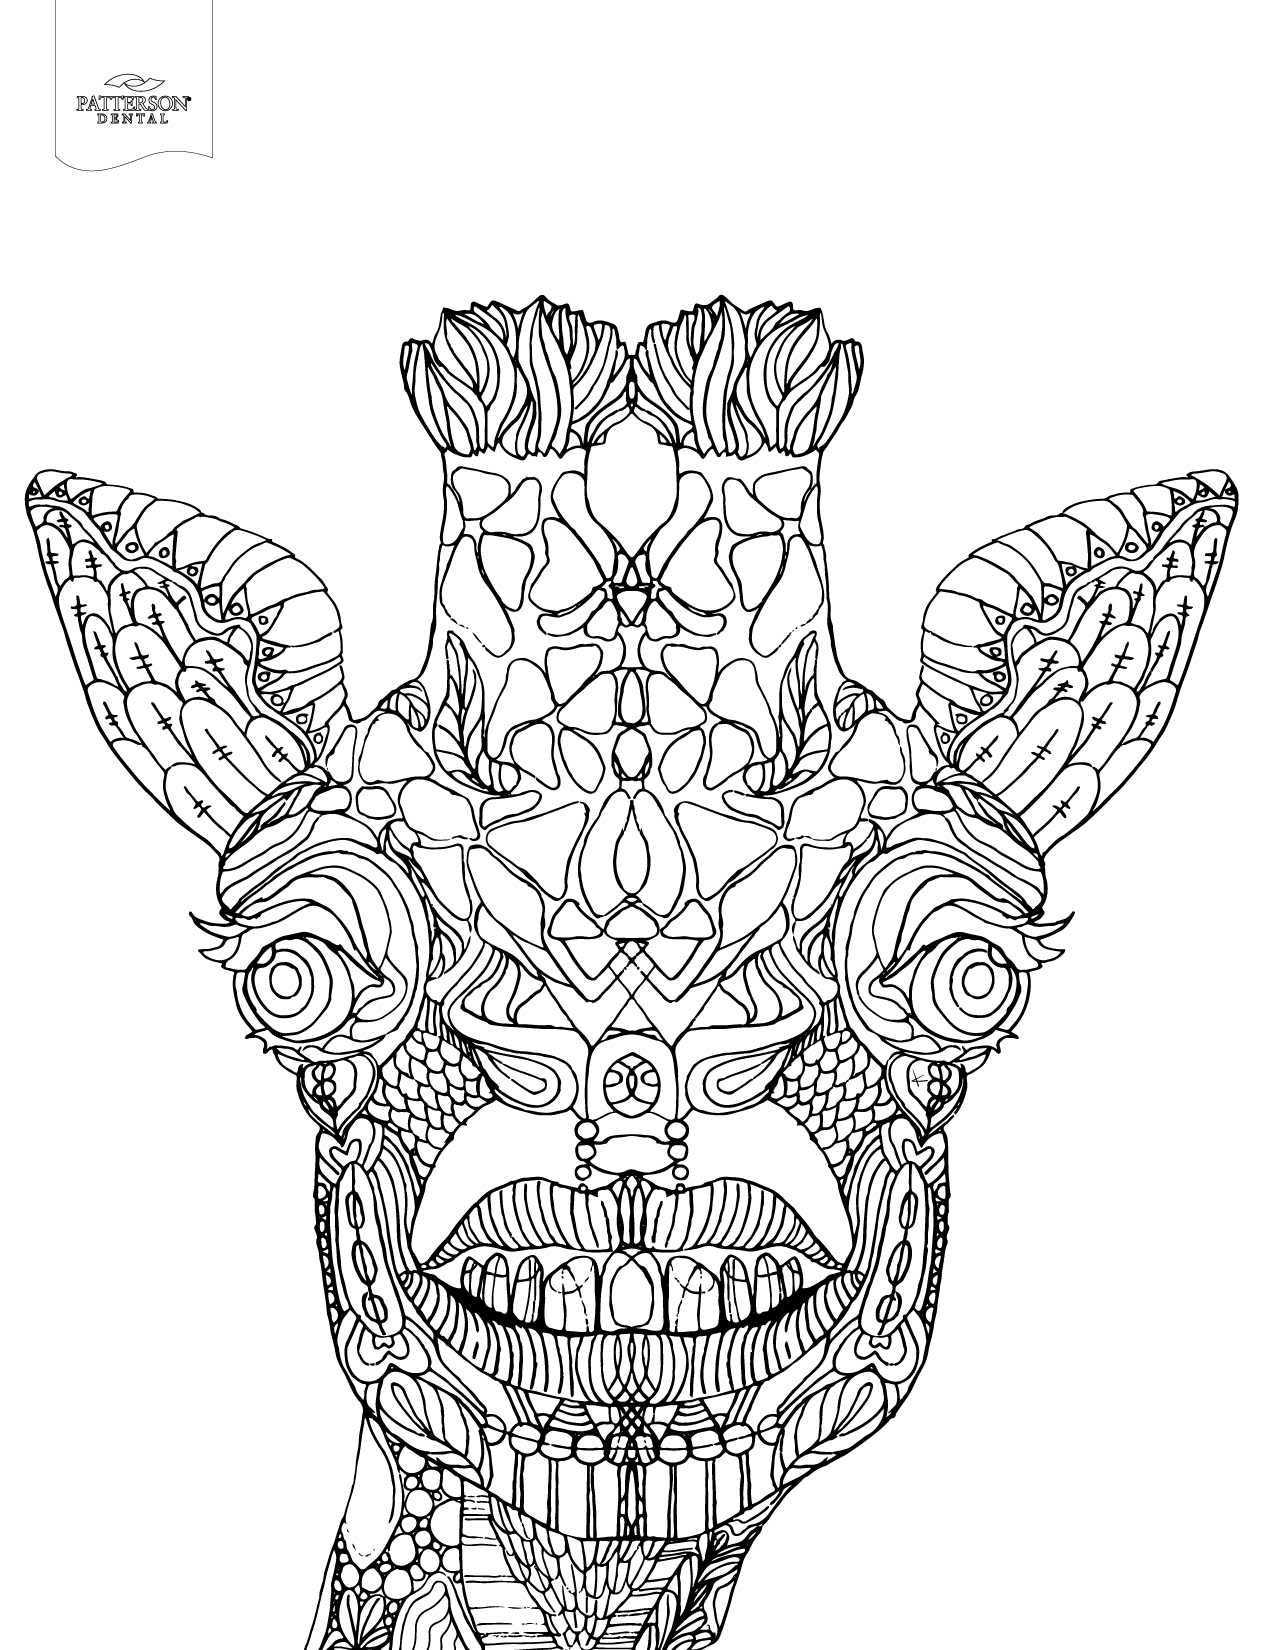 coloring printables 10 toothy adult coloring pages printable off the cusp printables coloring